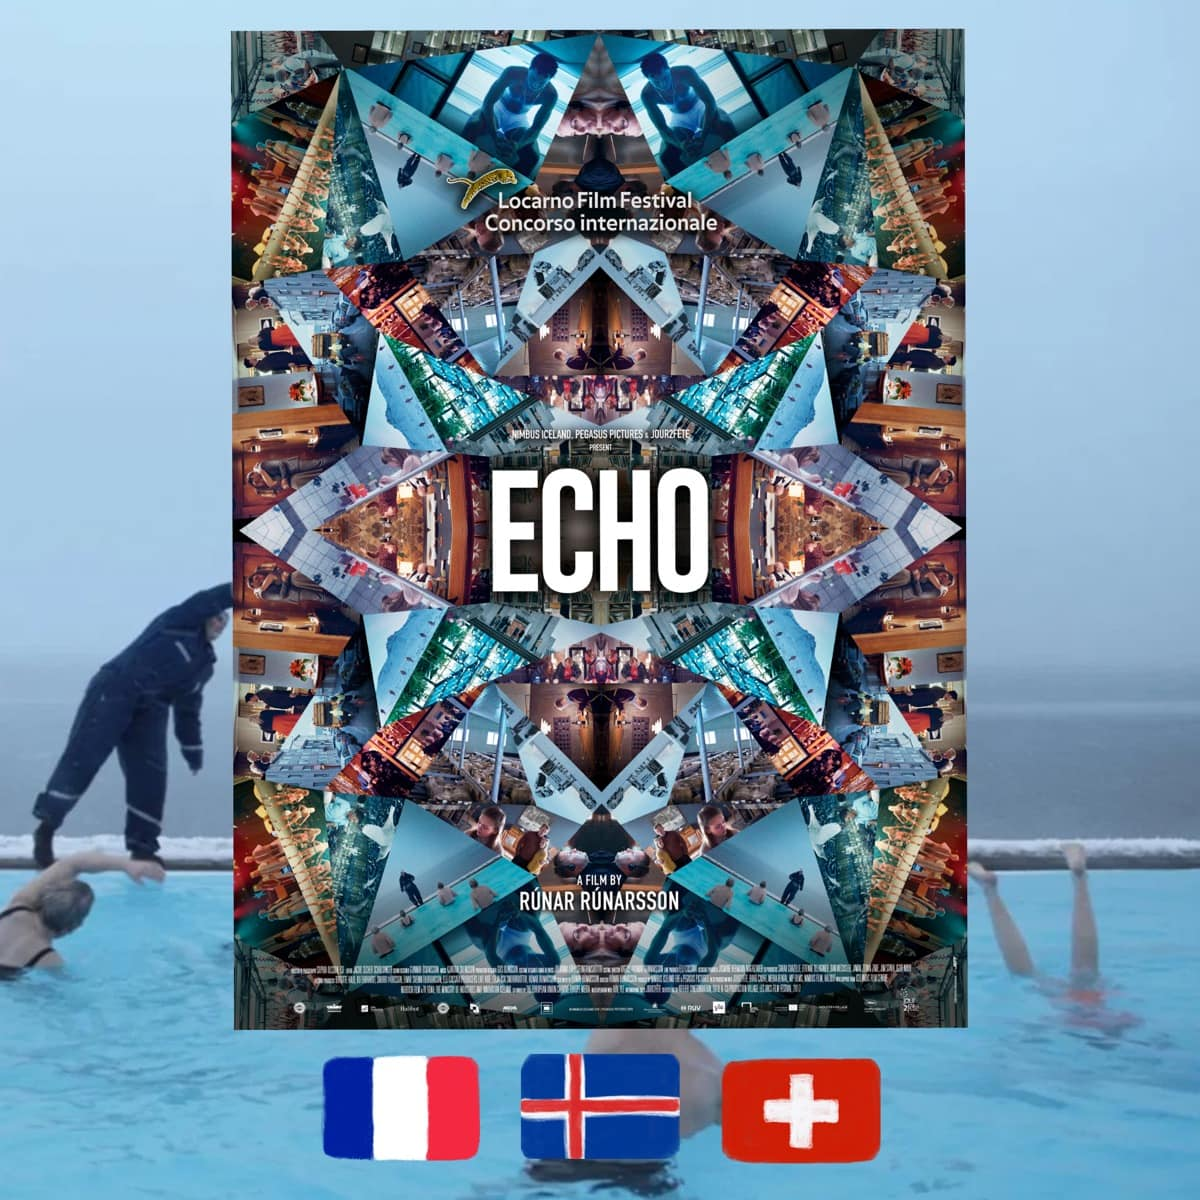 Echo, Rúnar Rúnarsson, movie poster